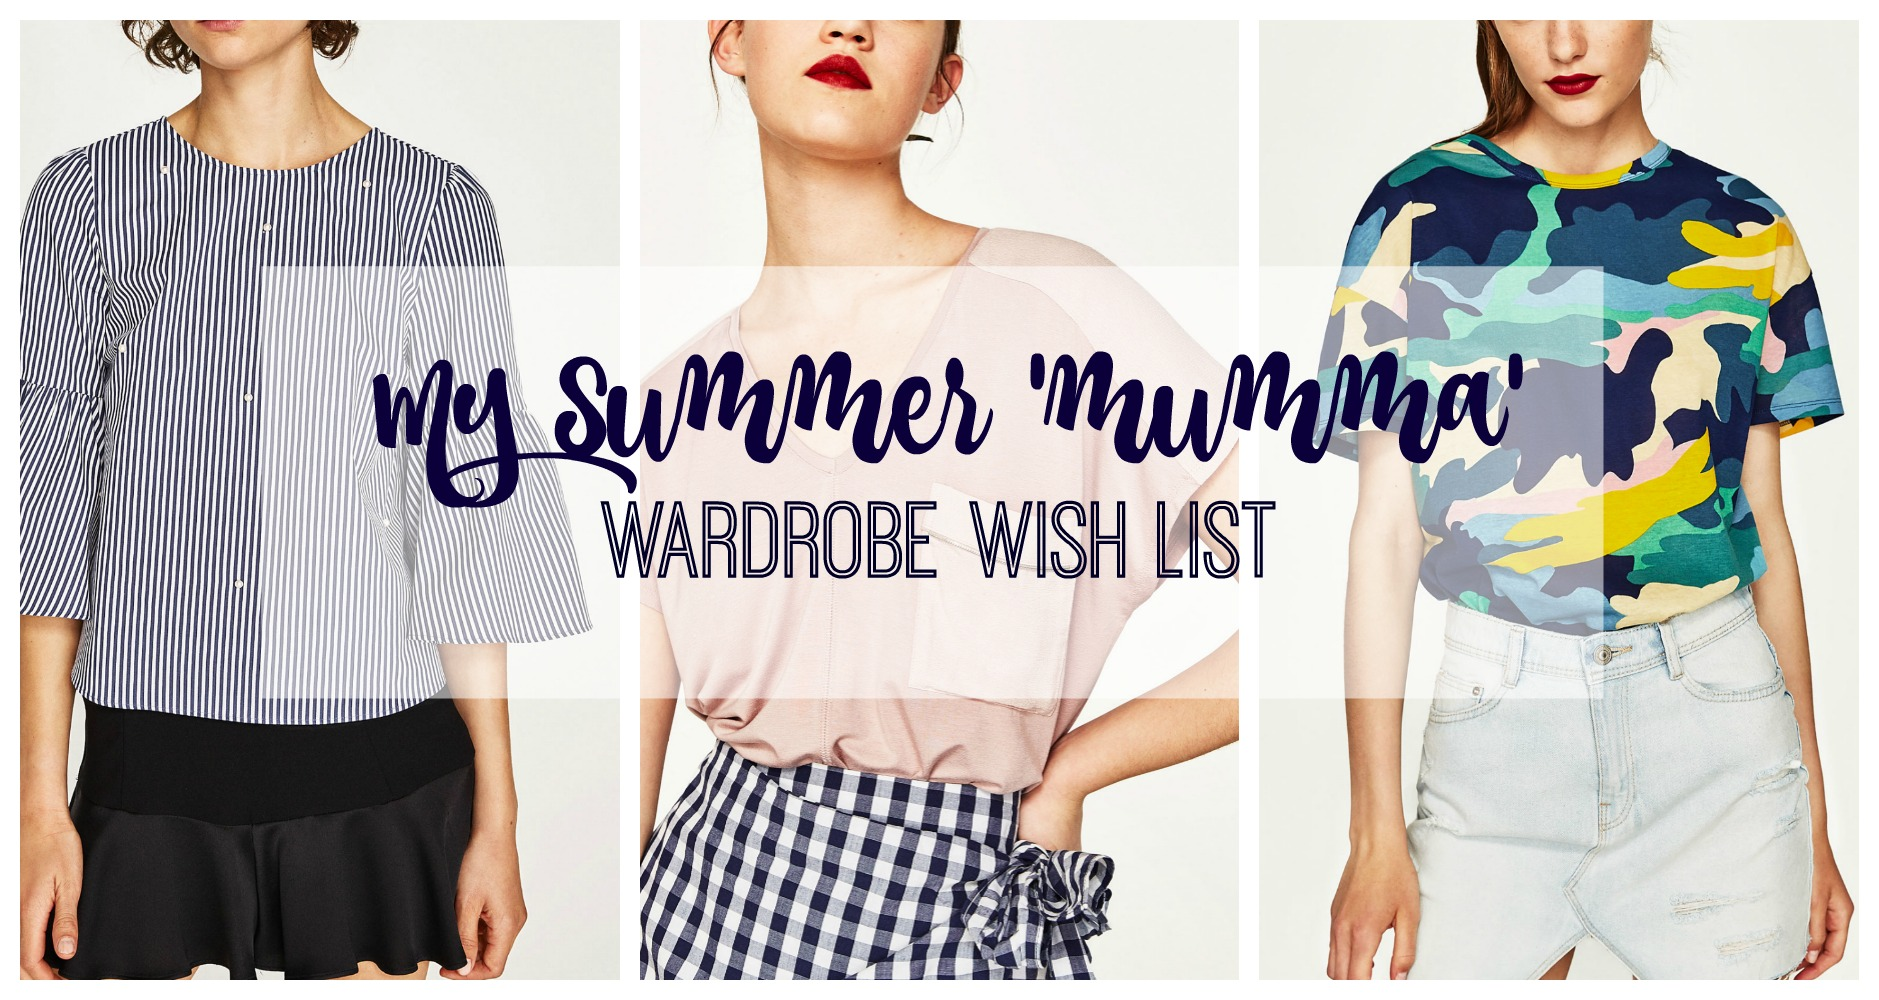 summer wardrobe wish list title